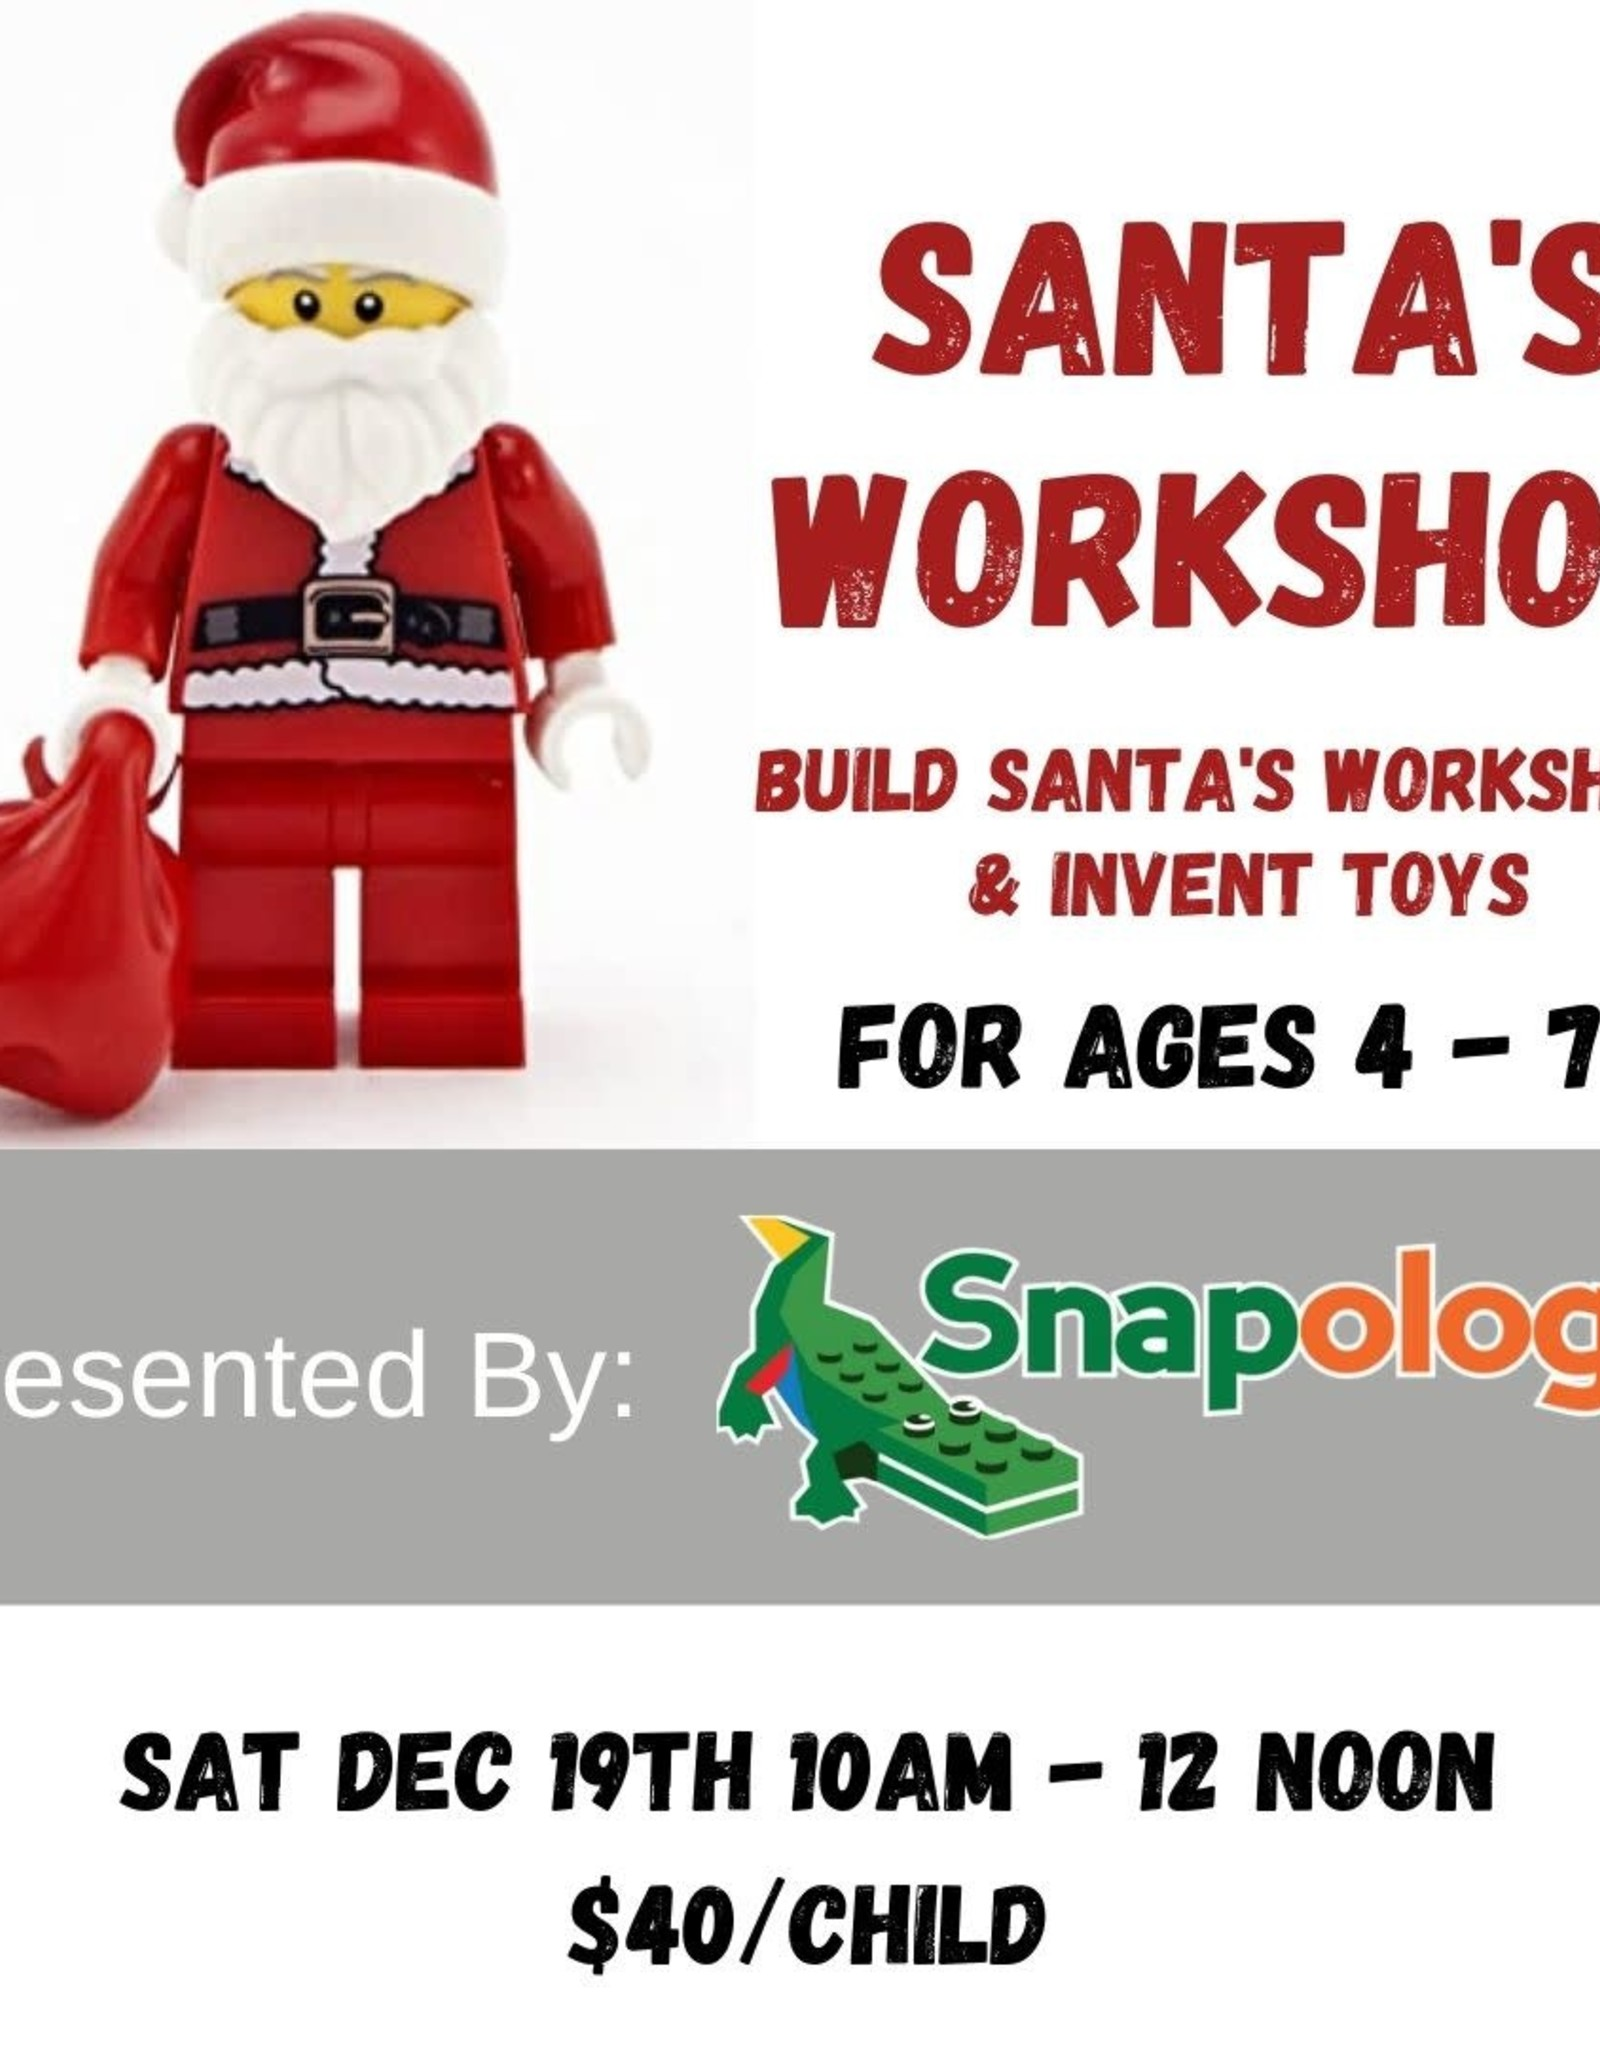 Santa's Workshop with Snapology - Dec 19